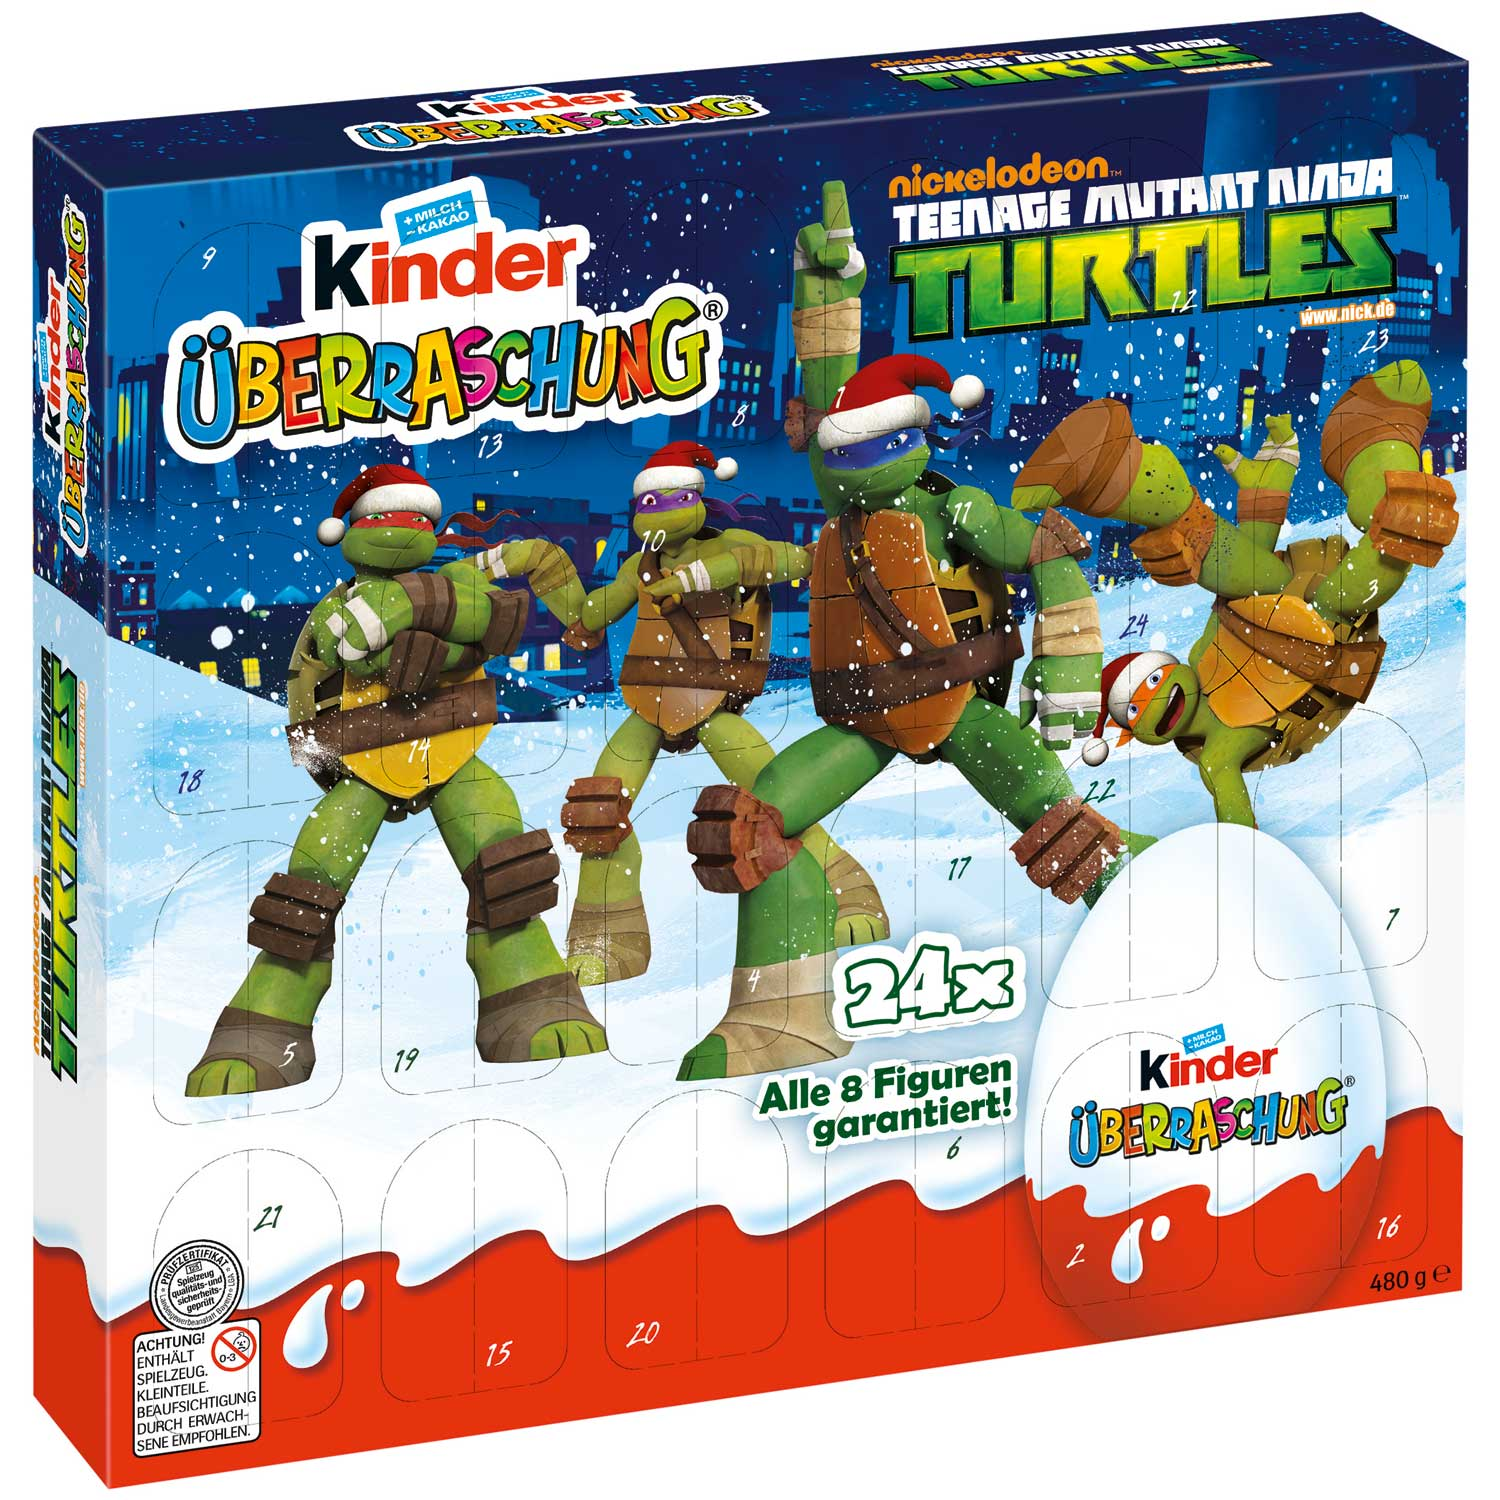 kinder berraschung adventskalender turtles online kaufen im world of sweets shop. Black Bedroom Furniture Sets. Home Design Ideas